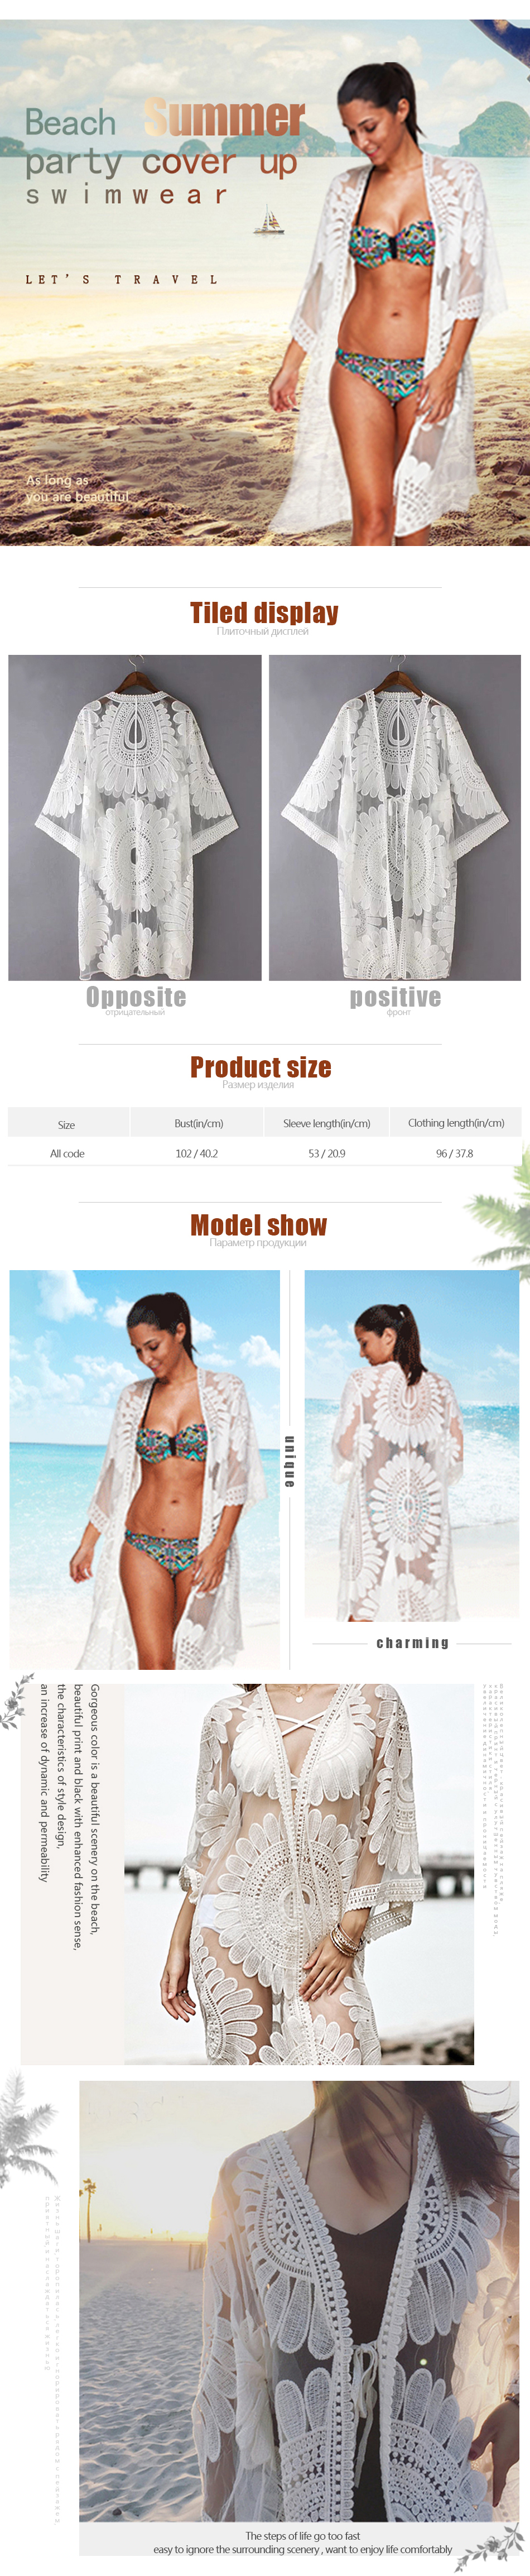 18 Pareo Beach Cover Up Floral Embroidery Bikini Cover Up Swimwear Women Robe De Plage Beach Cardigan Bathing Suit Cover Ups 1